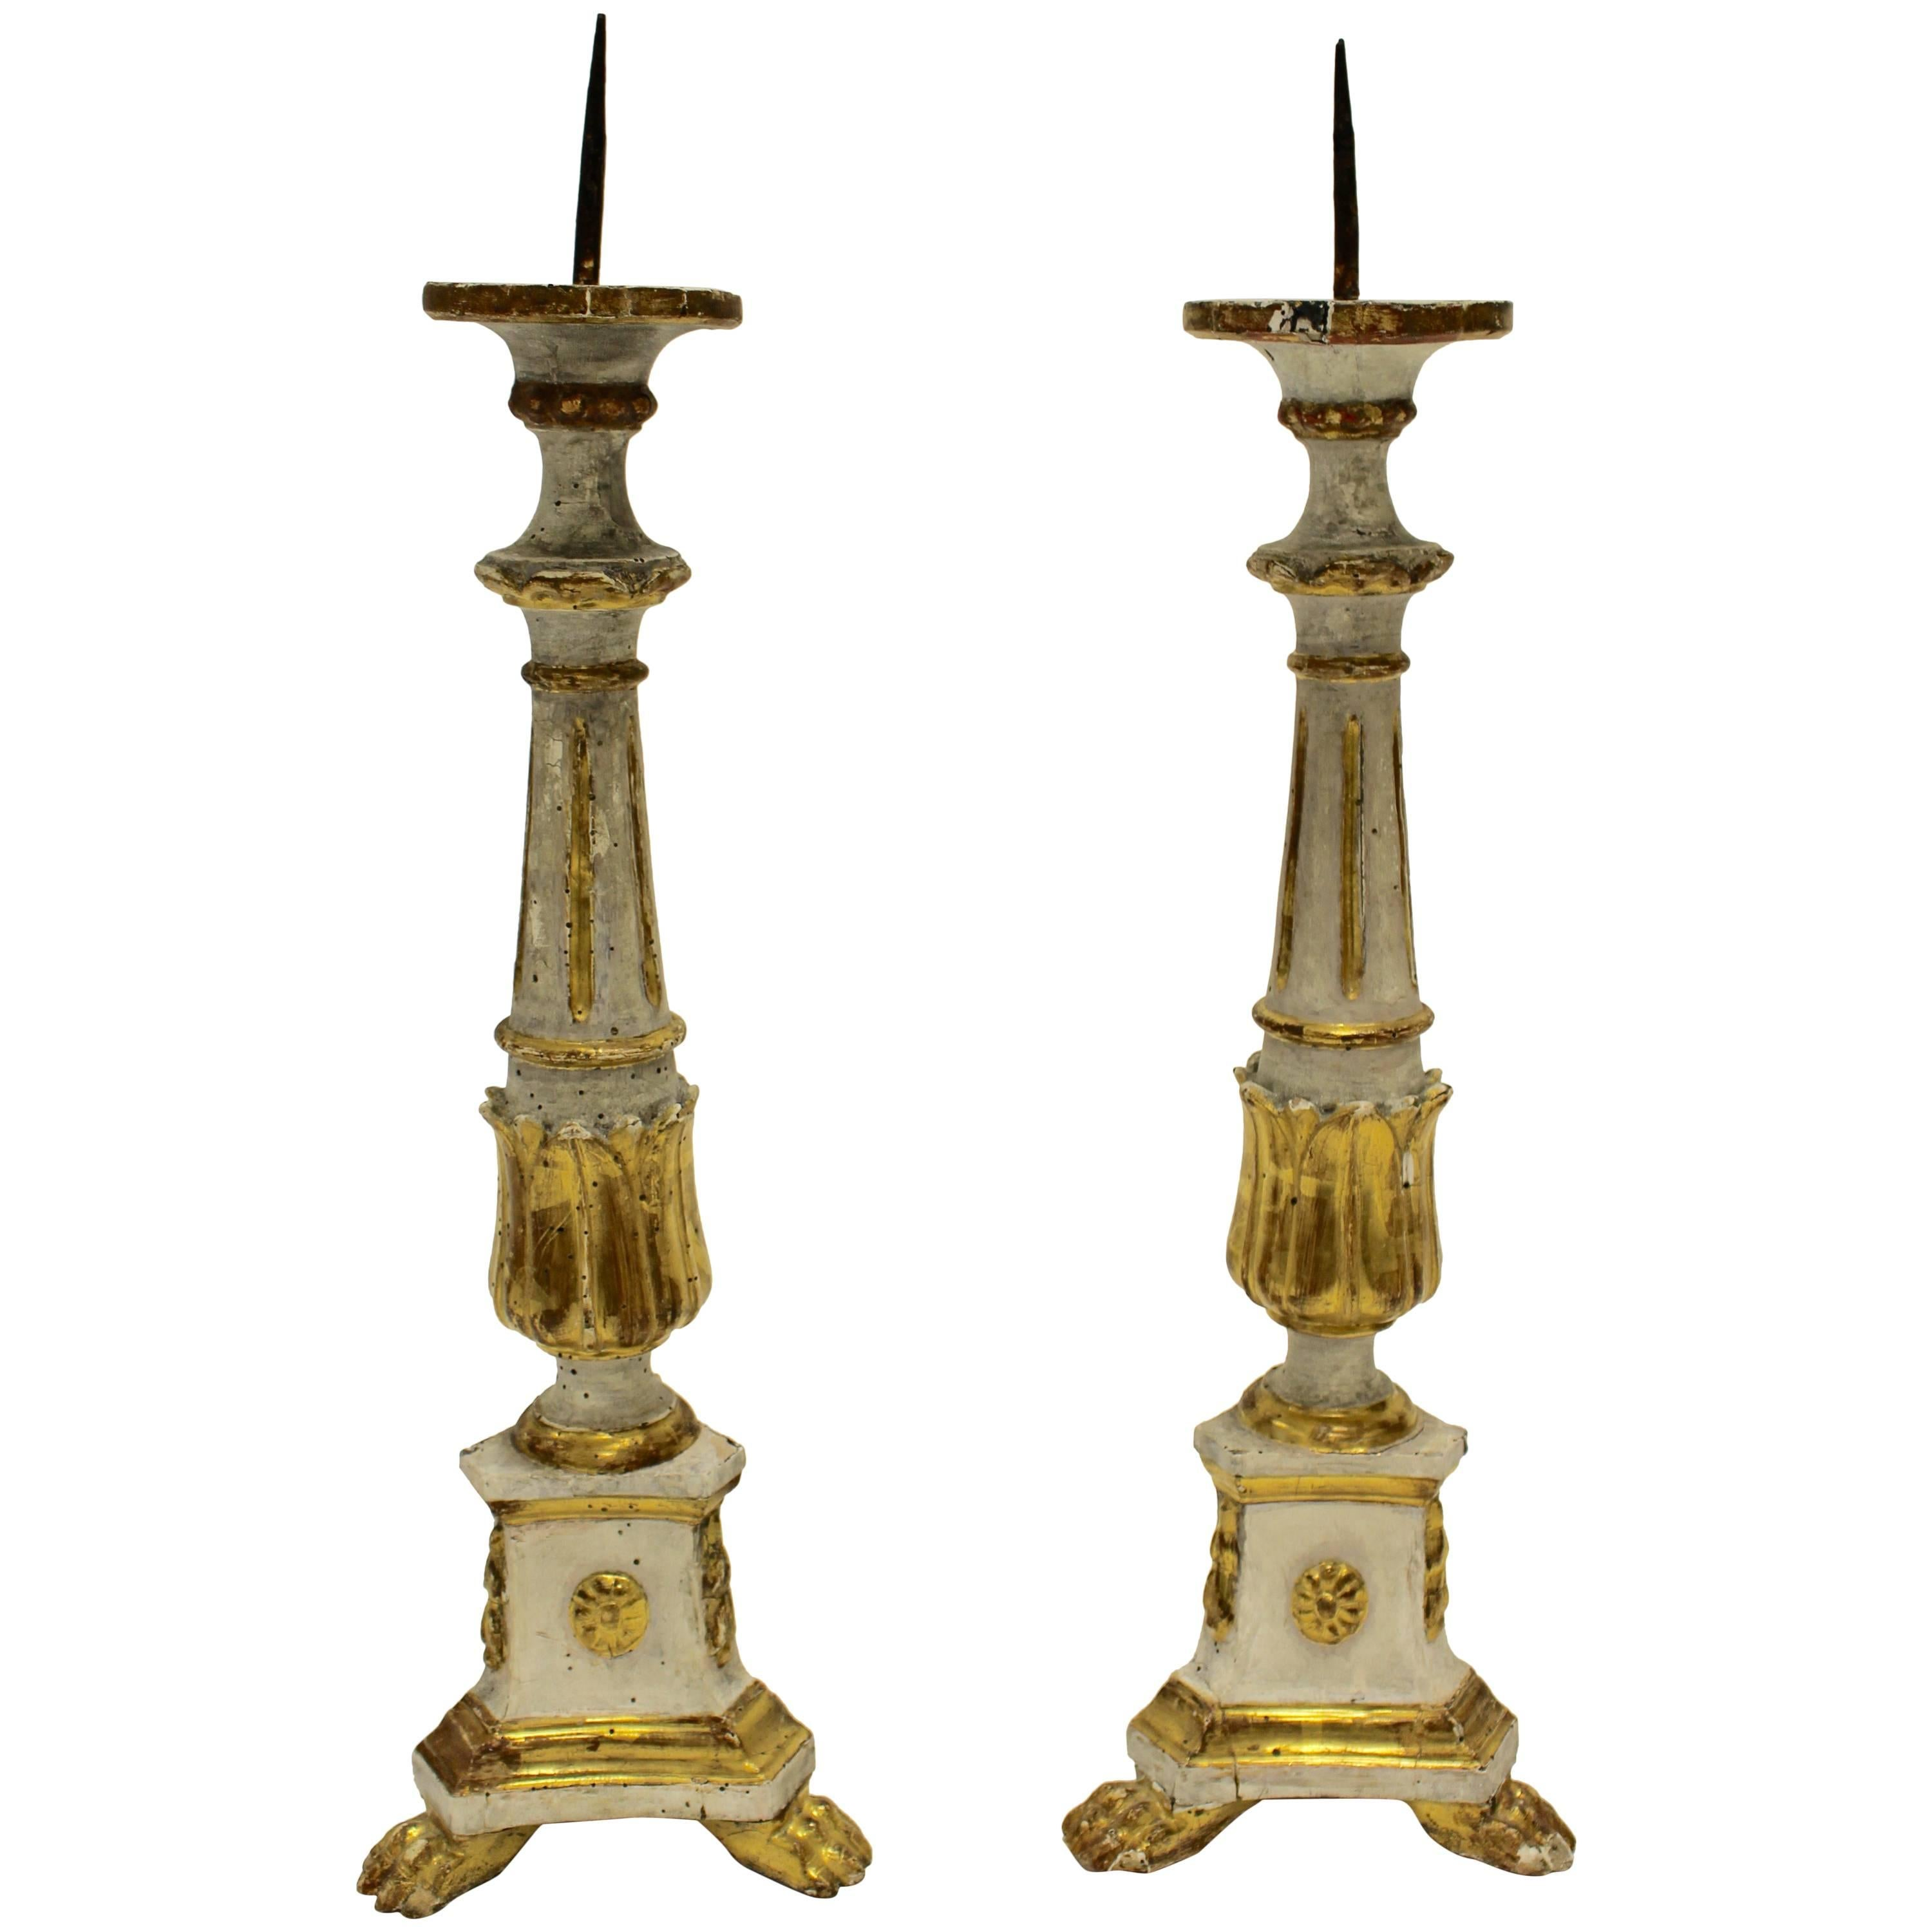 Pair of Italian Neoclassical Period 18th Century Carved Giltwood Candlesticks